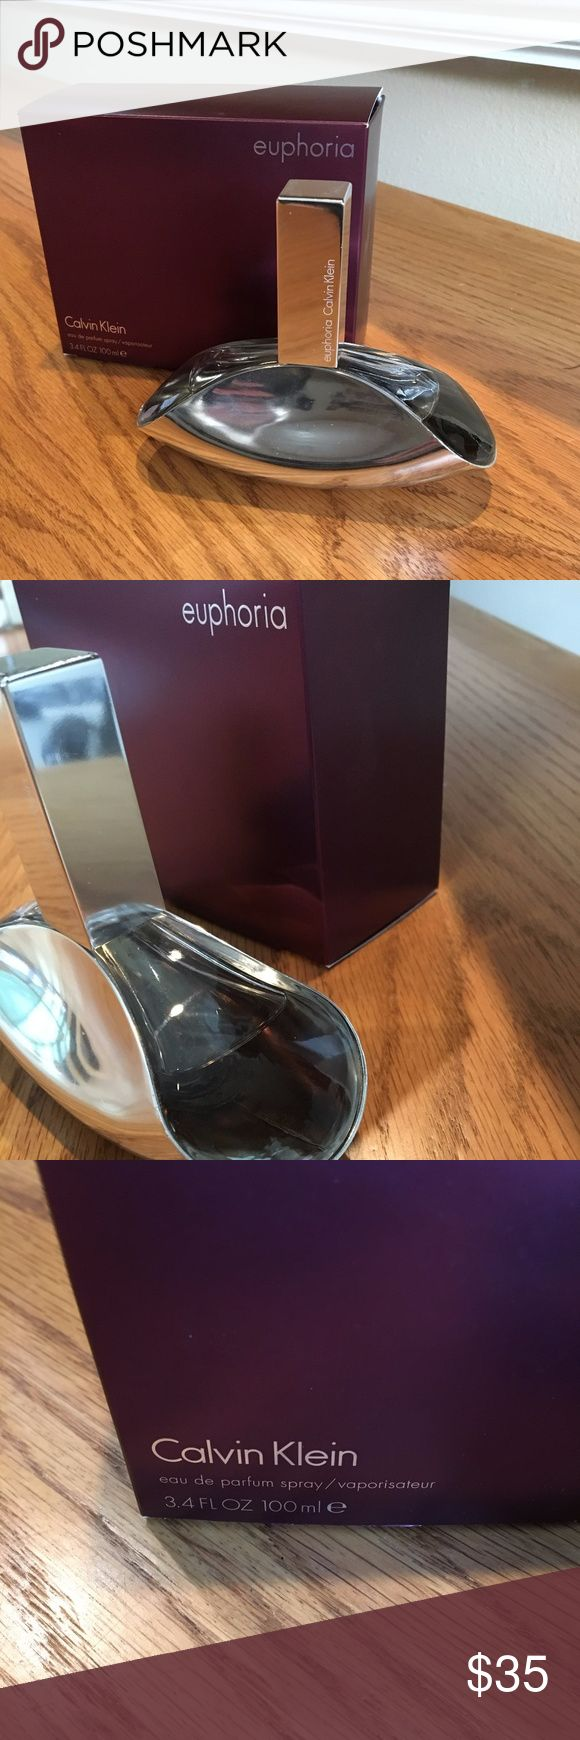 Euphoria By Calvin Klein Perfume Description: A captivating fragrance that contrasts between exotic fruits and seductive florals for a rich creamy seductive scent  Size: 3.4 oz. 100 ml Fragrance Type: Eau de Perfume Spray Packaging: Comes in Original Retail Box This Item Has Been Partially Used as Shown in the Pictures  Item Will Come Exactly as Pictured  Feel Free to Ask Questions & Make Offers!!! Calvin Klein Other